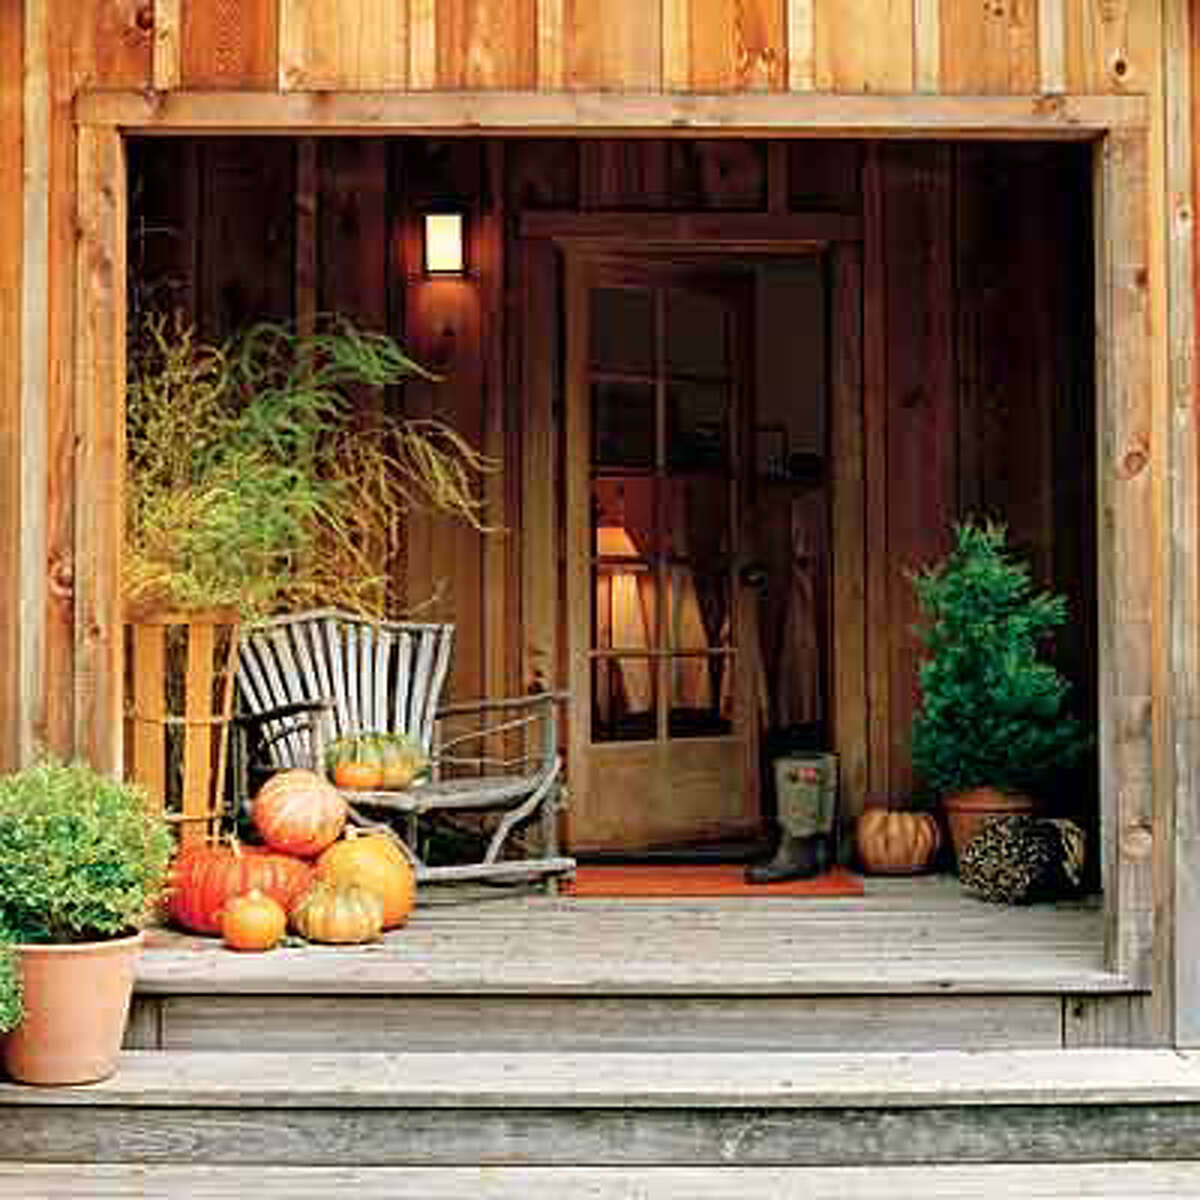 3. Decorate with pumpkins Nothing says Thanksgiving like pumpkins! This is a quick and easy way to get in the holiday spirit.